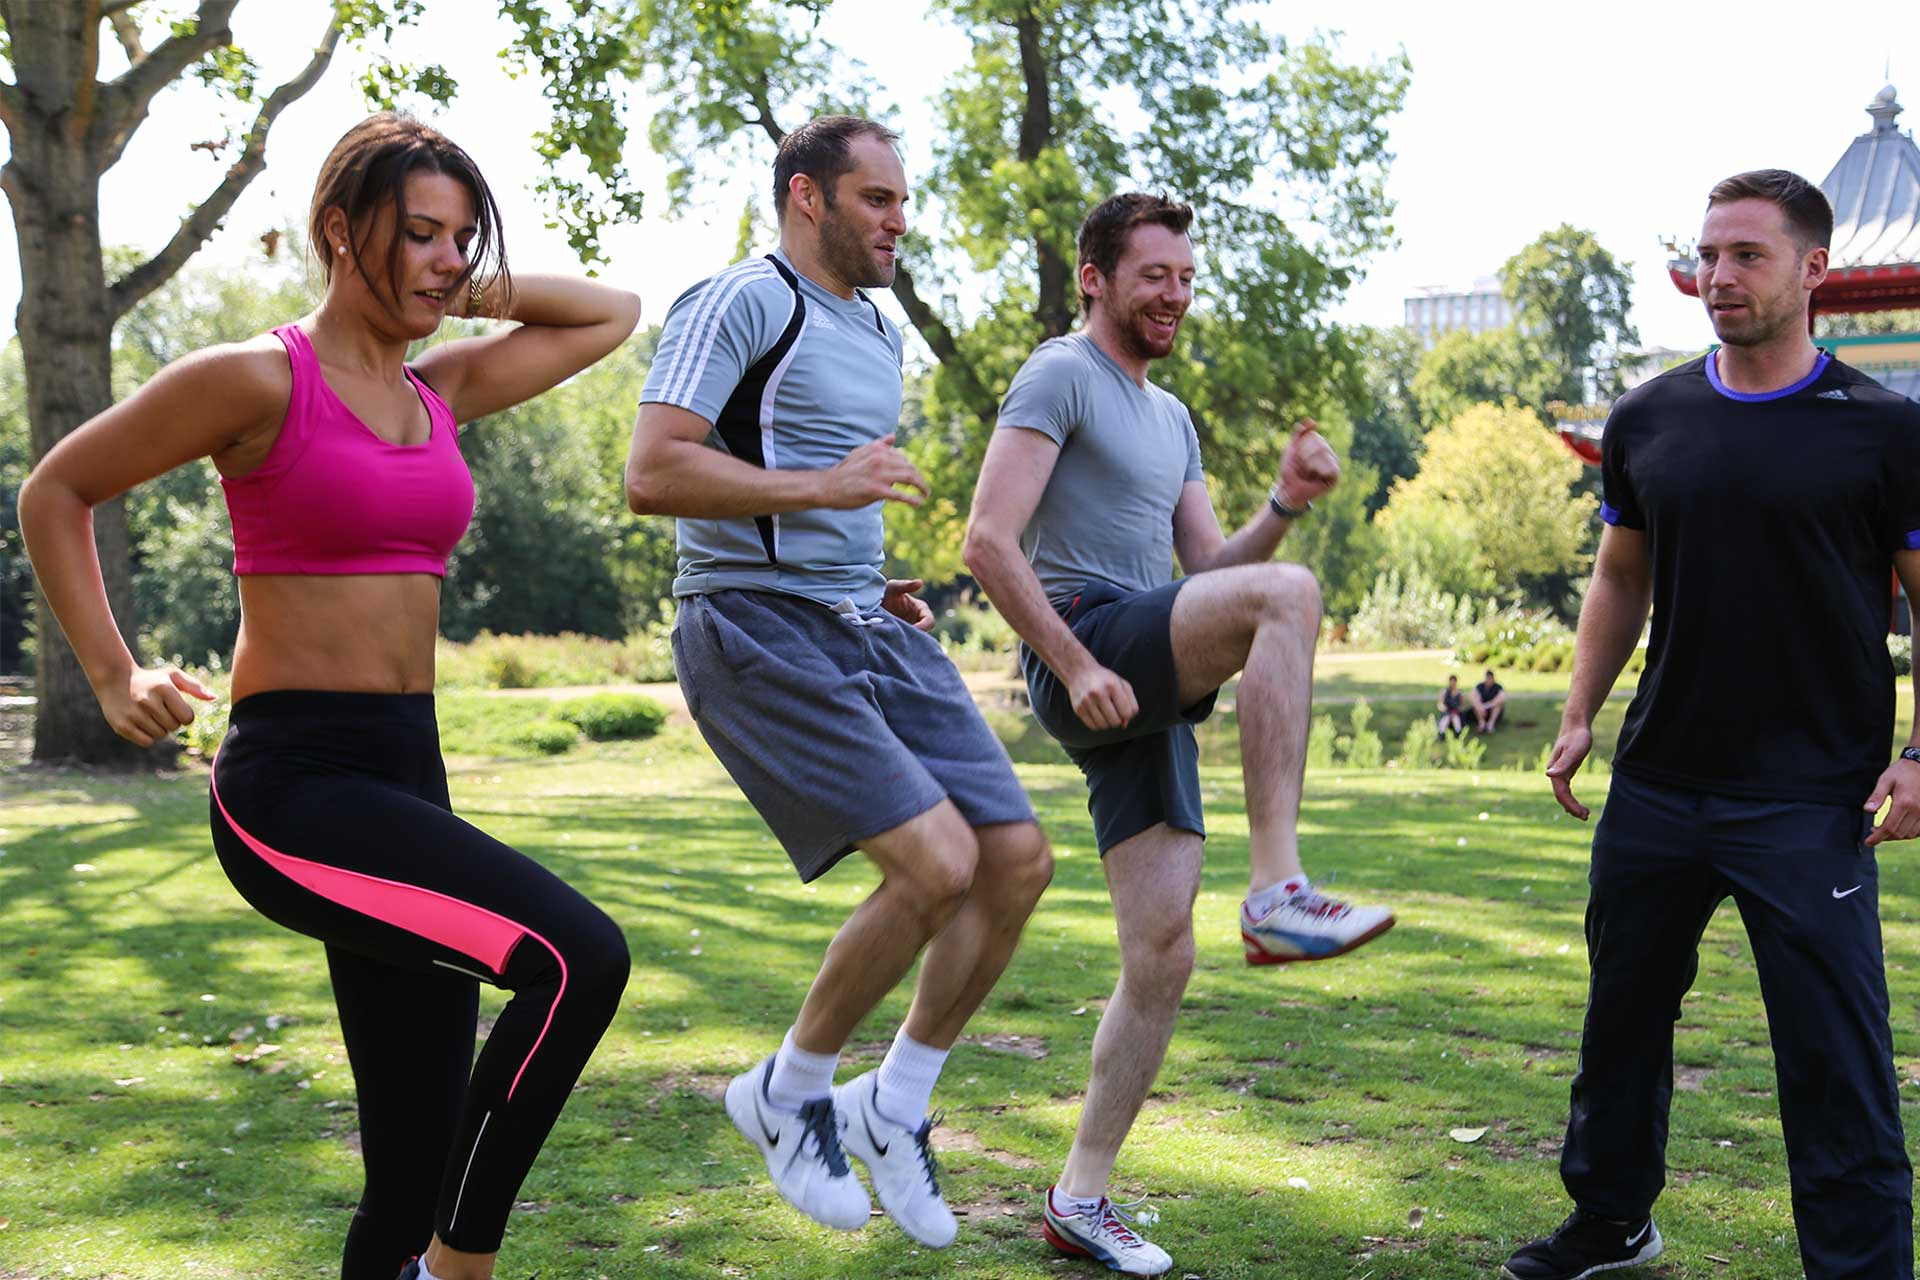 Outdoor exercises with friends and personal trainer in park